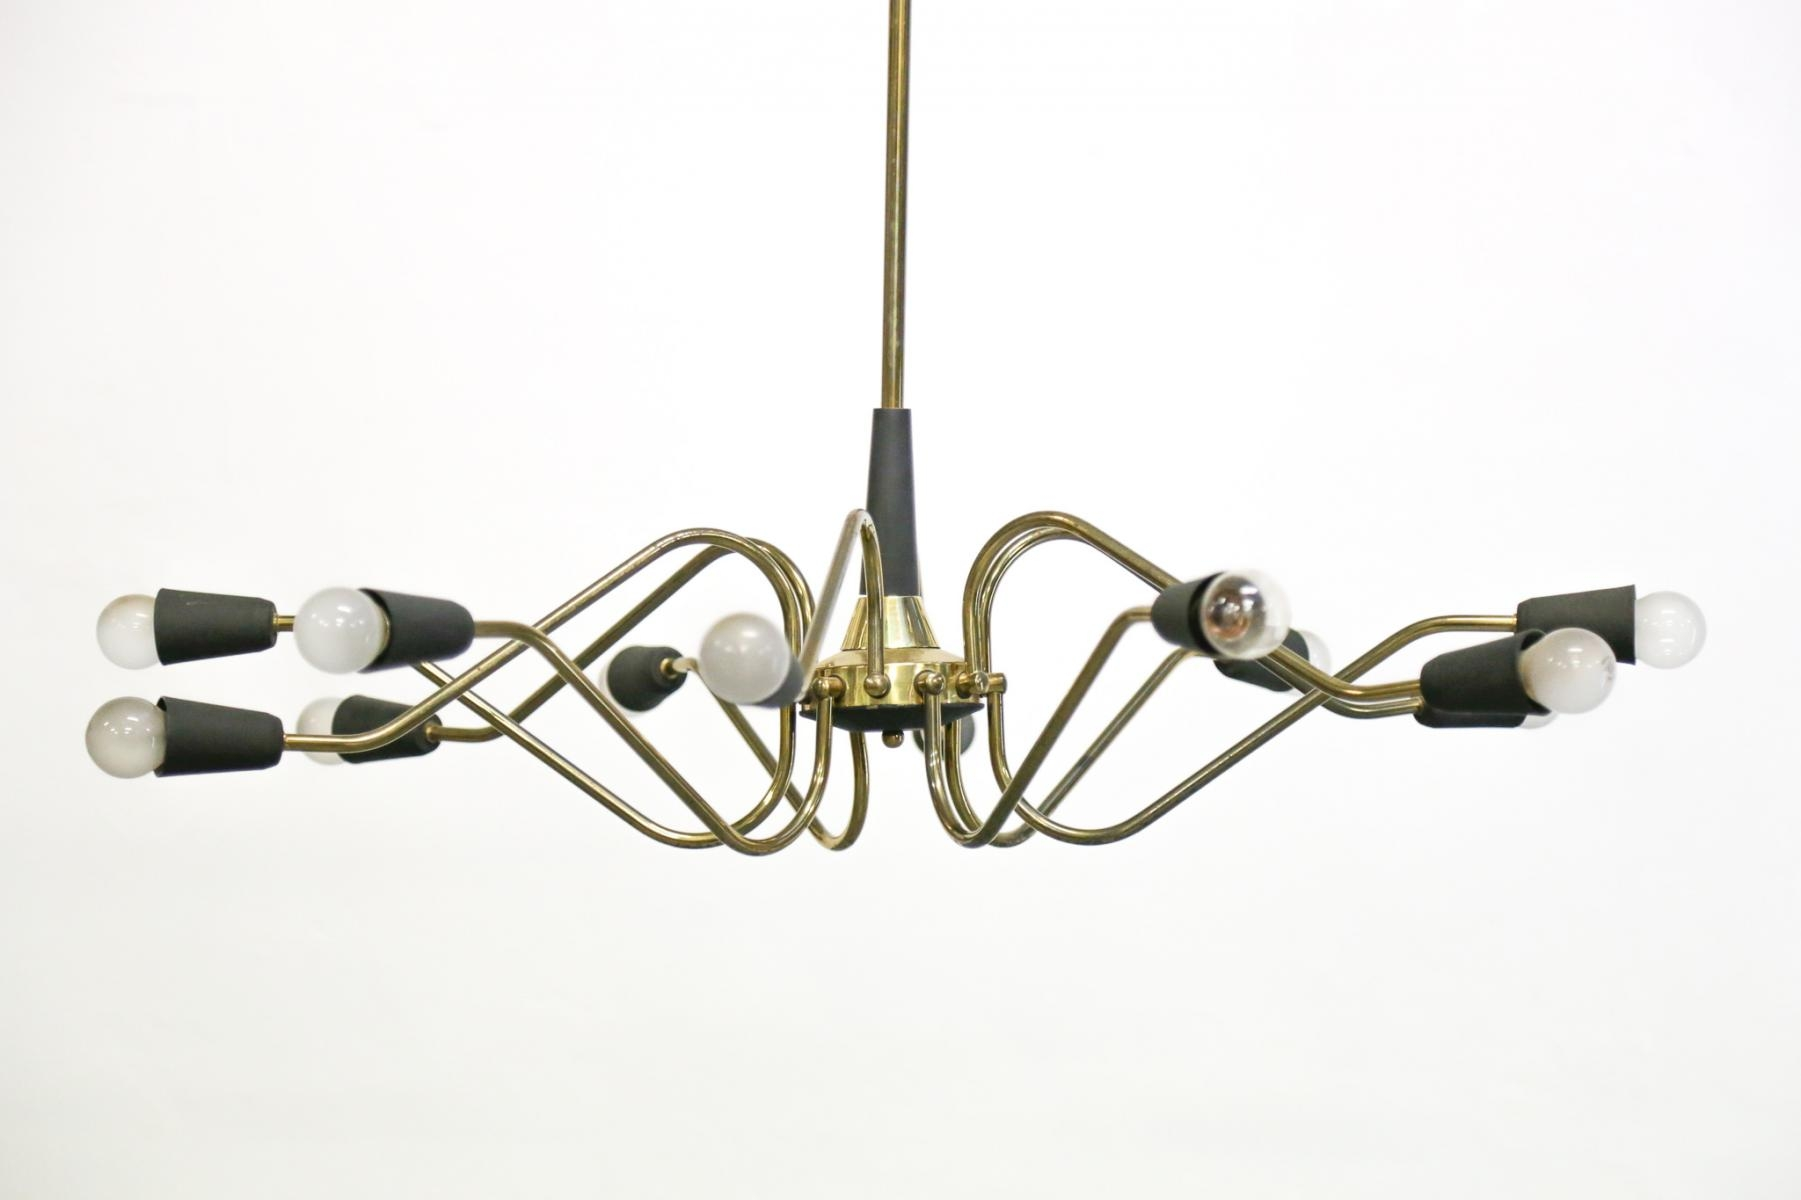 Vintage Italian Chandelier From Stilnovo For Sale At Pamono With Regard To Vintage Italian Chandeliers (#12 of 12)